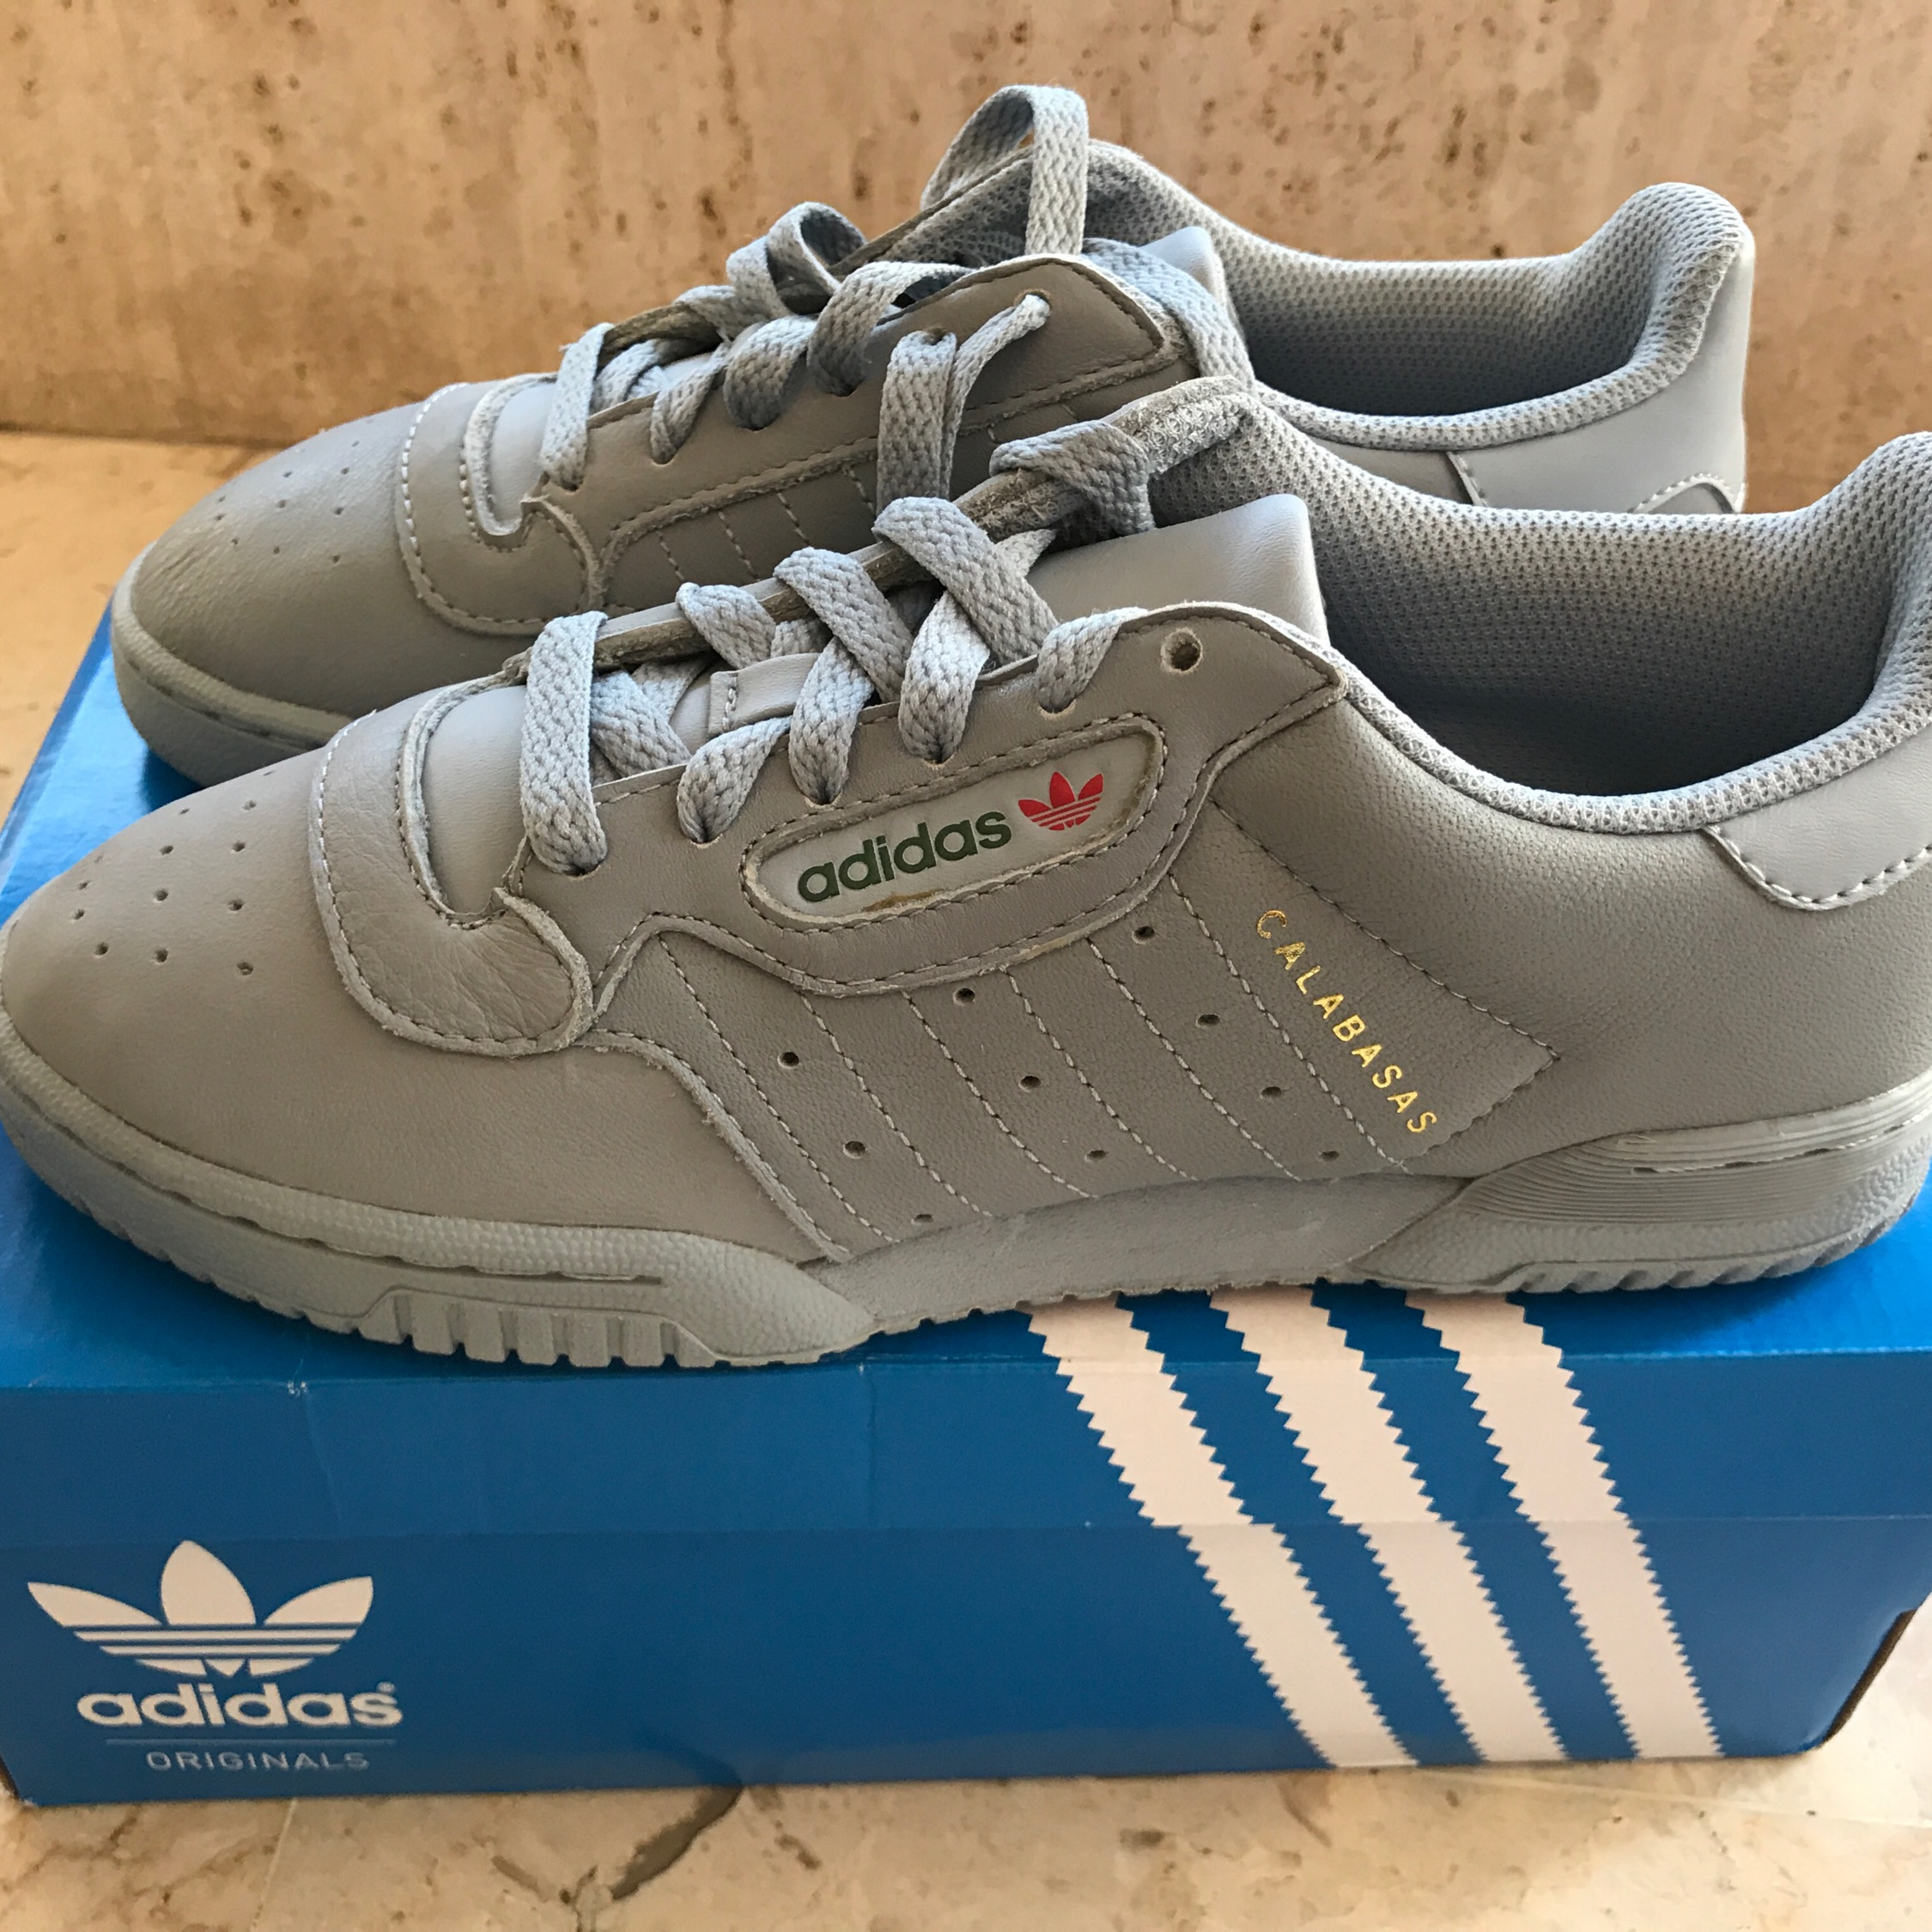 f7808893 ... adidas yeezy powerphase grey Adidas Yeezy Powerphase Grey Calabasas Size  ...